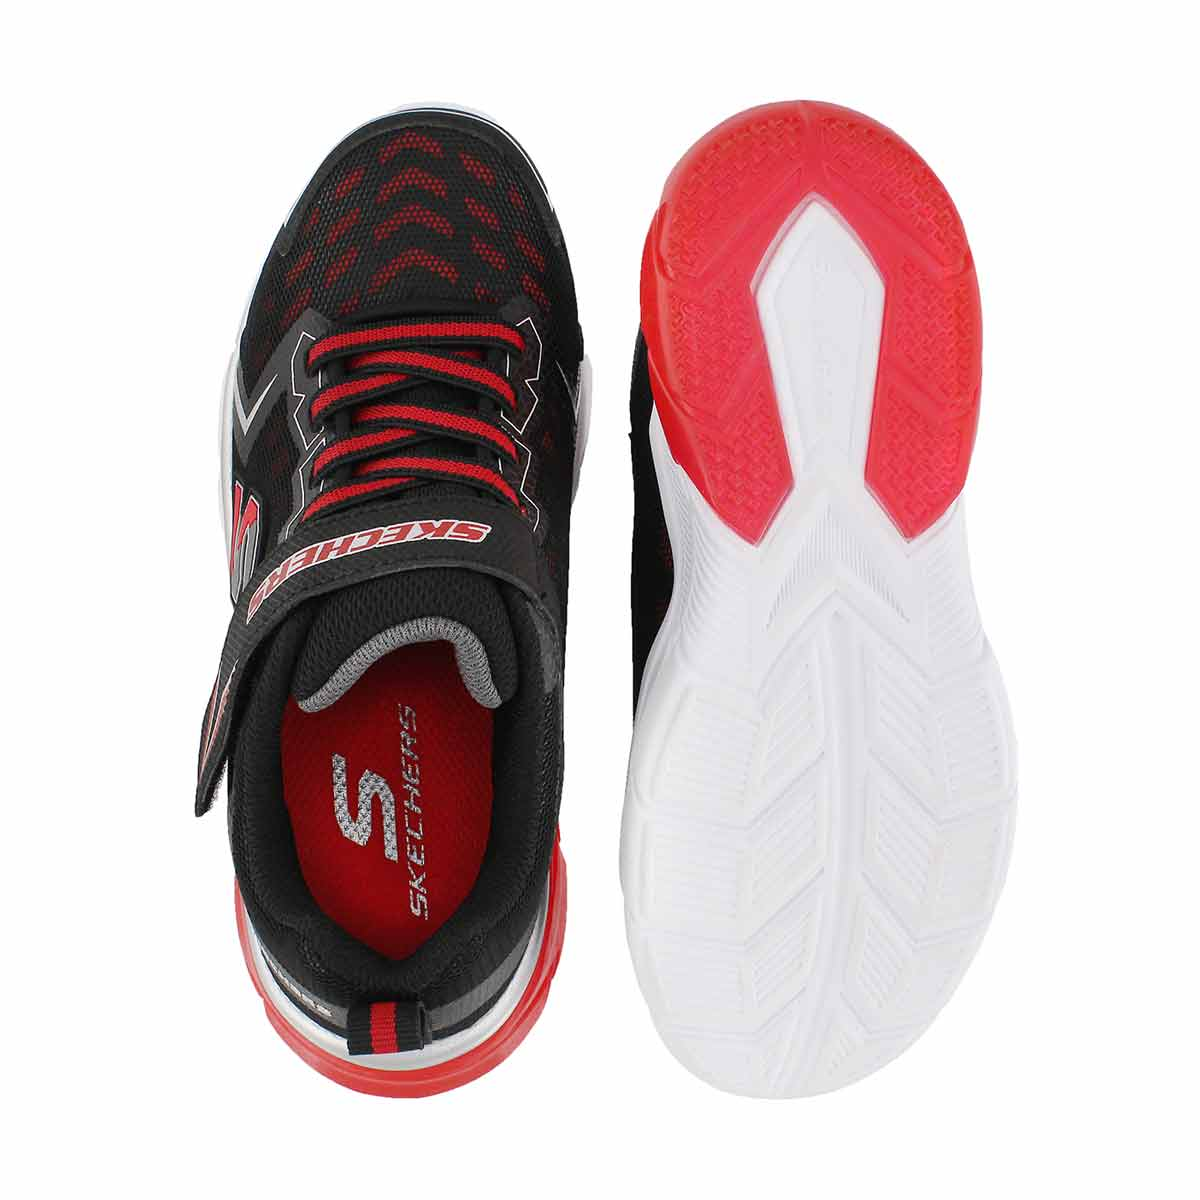 Bys Thermoflux NanoGrid blk/red sneaker